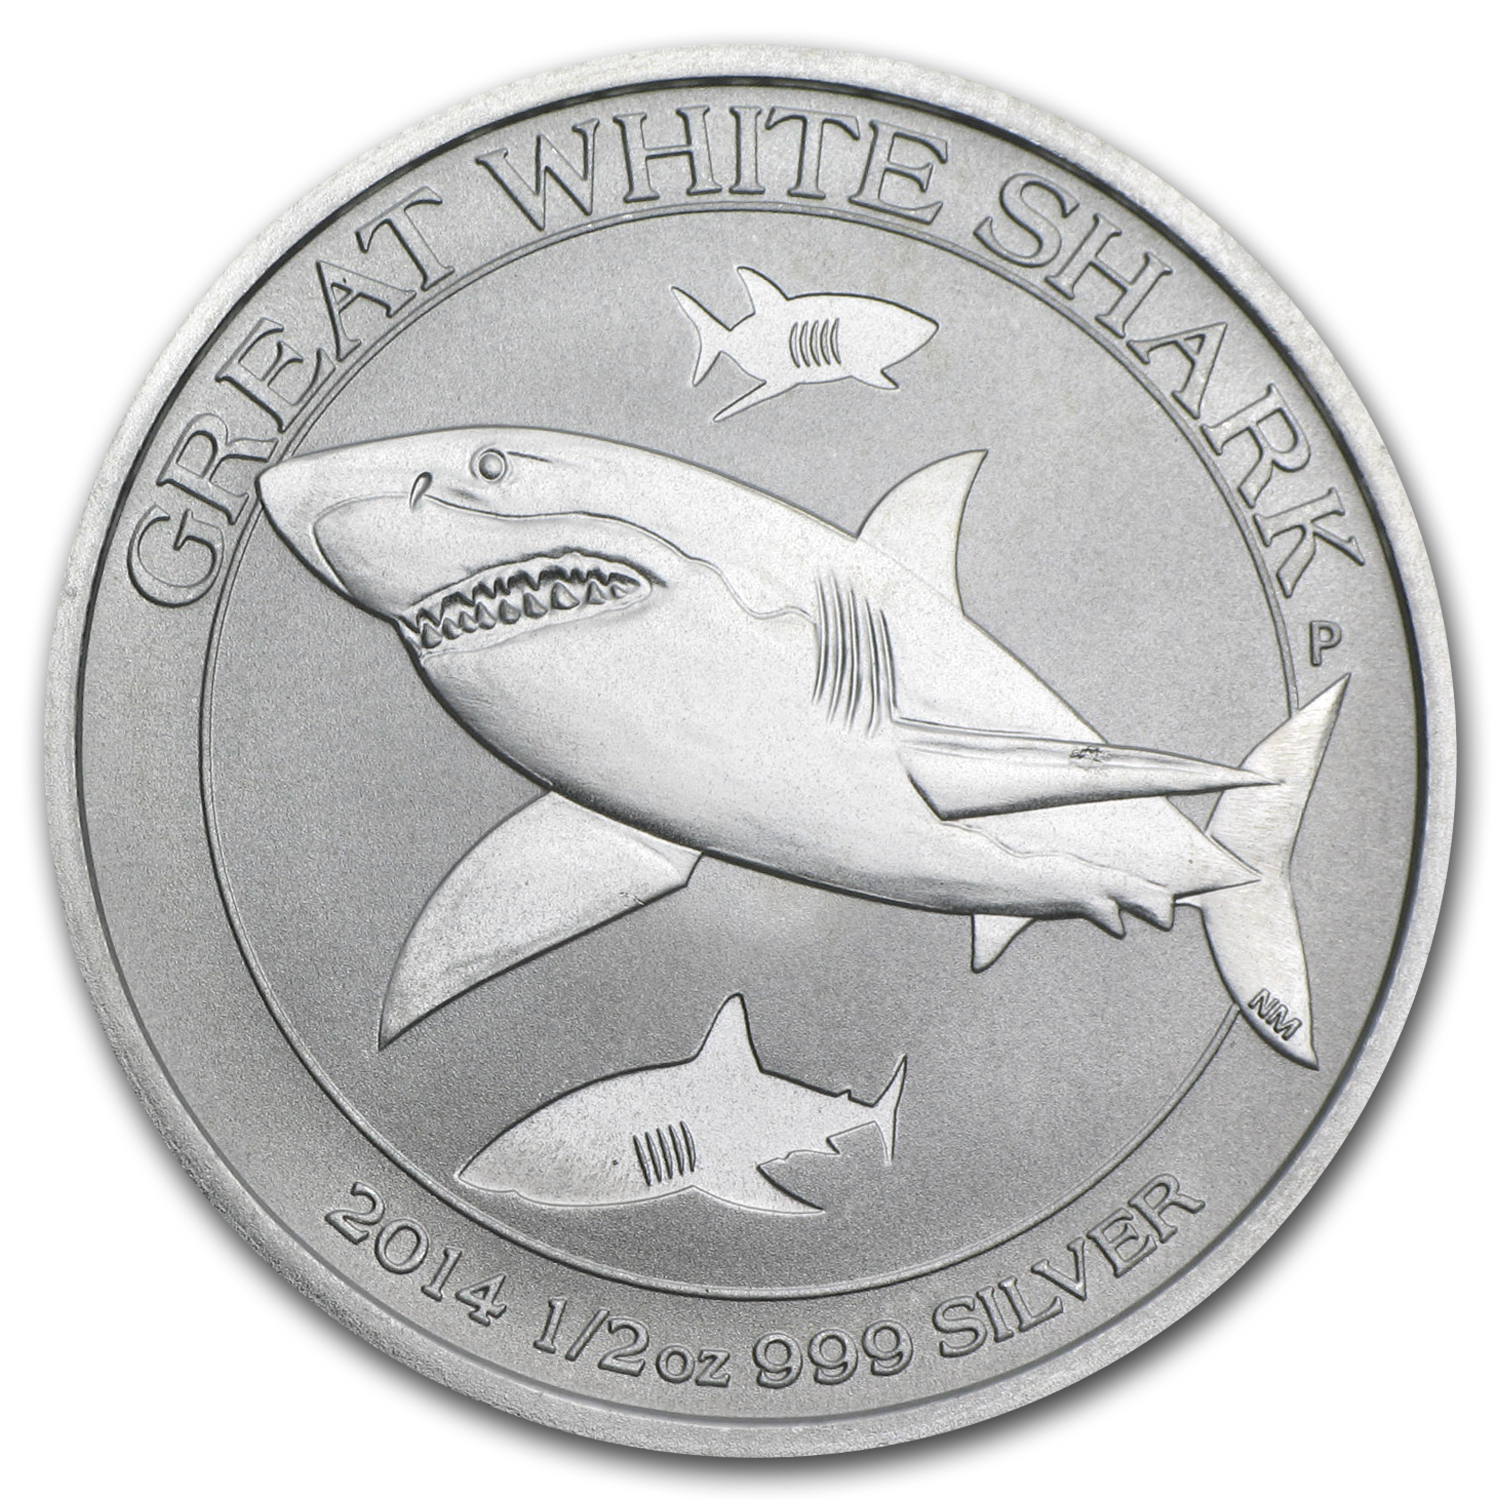 2014 Australia 1/2 oz Silver Great White Shark